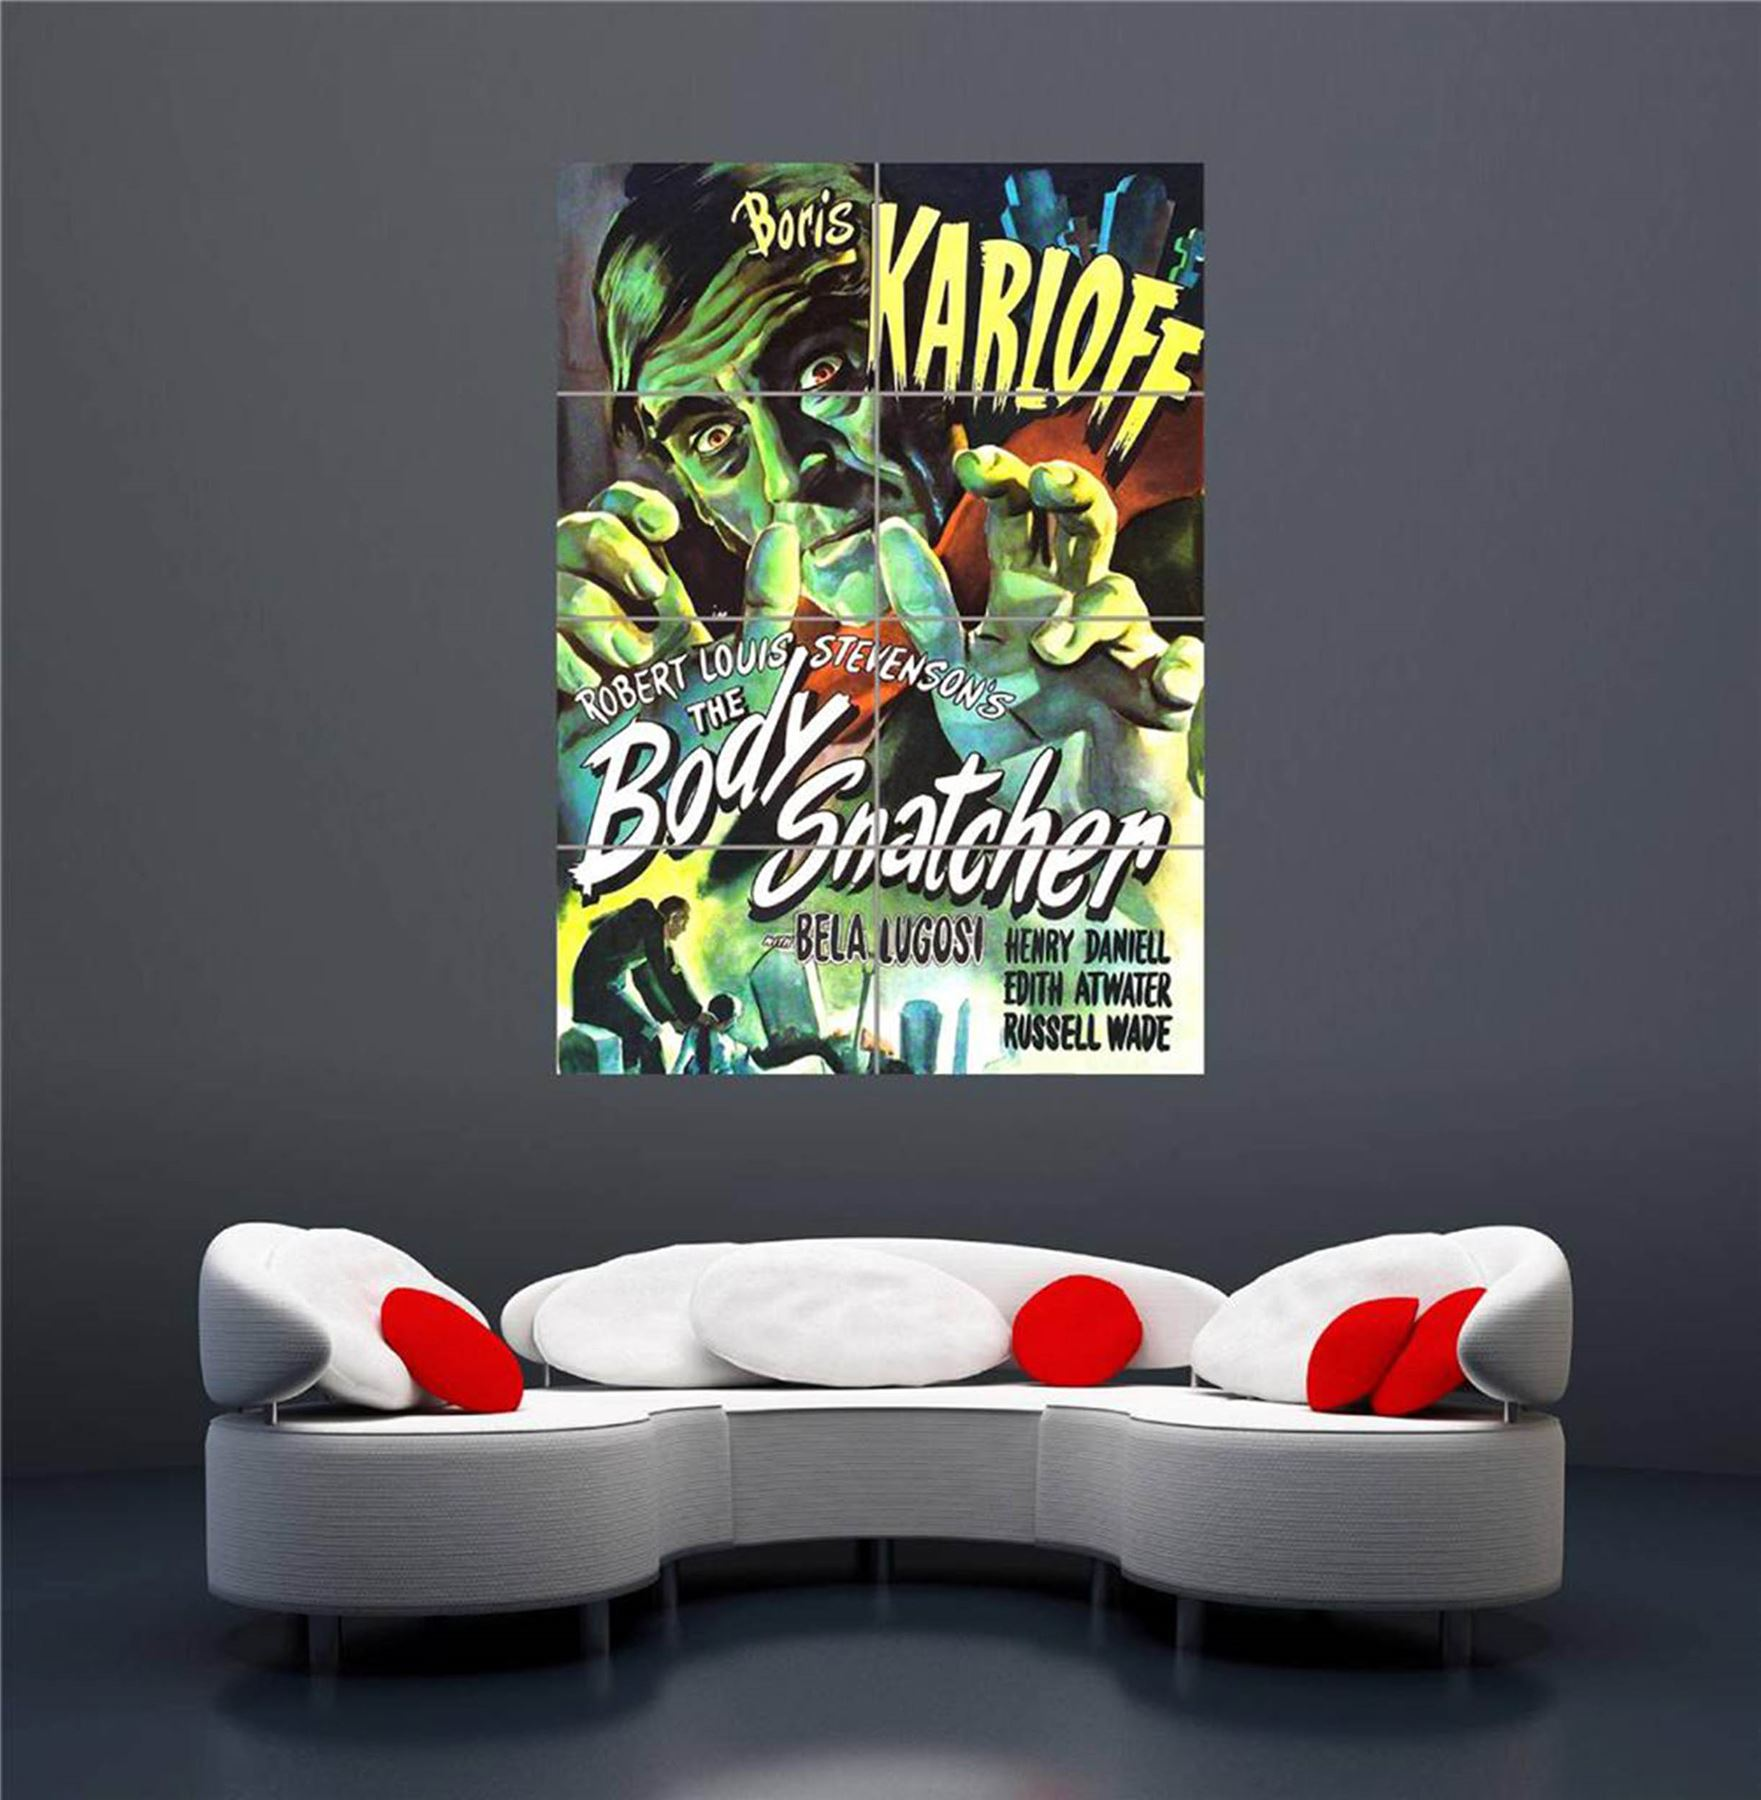 VINTAGE-OLD-MOVIE-THE-BODY-SNATCHER-NEW-GIANT-WALL-ART-PRINT-POSTER-OZ992